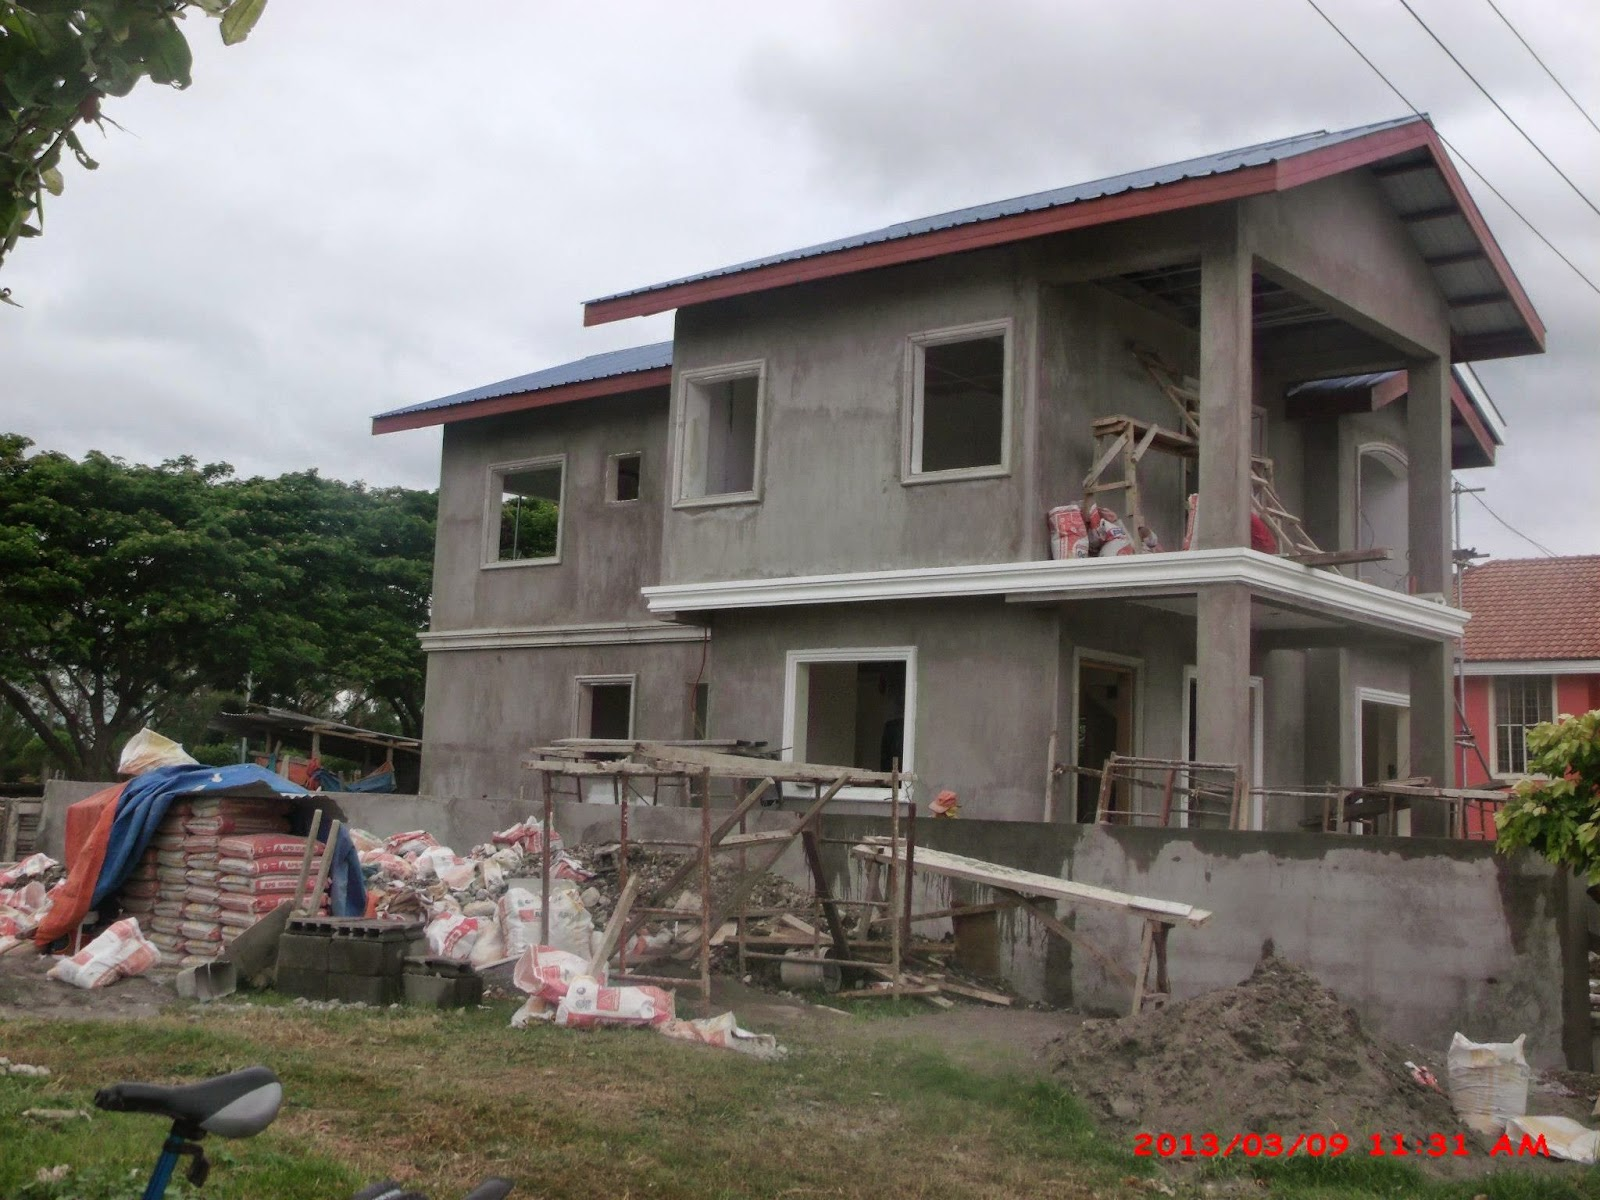 Design house plans philippines home design and style for Philippine house designs and floor plans for small houses